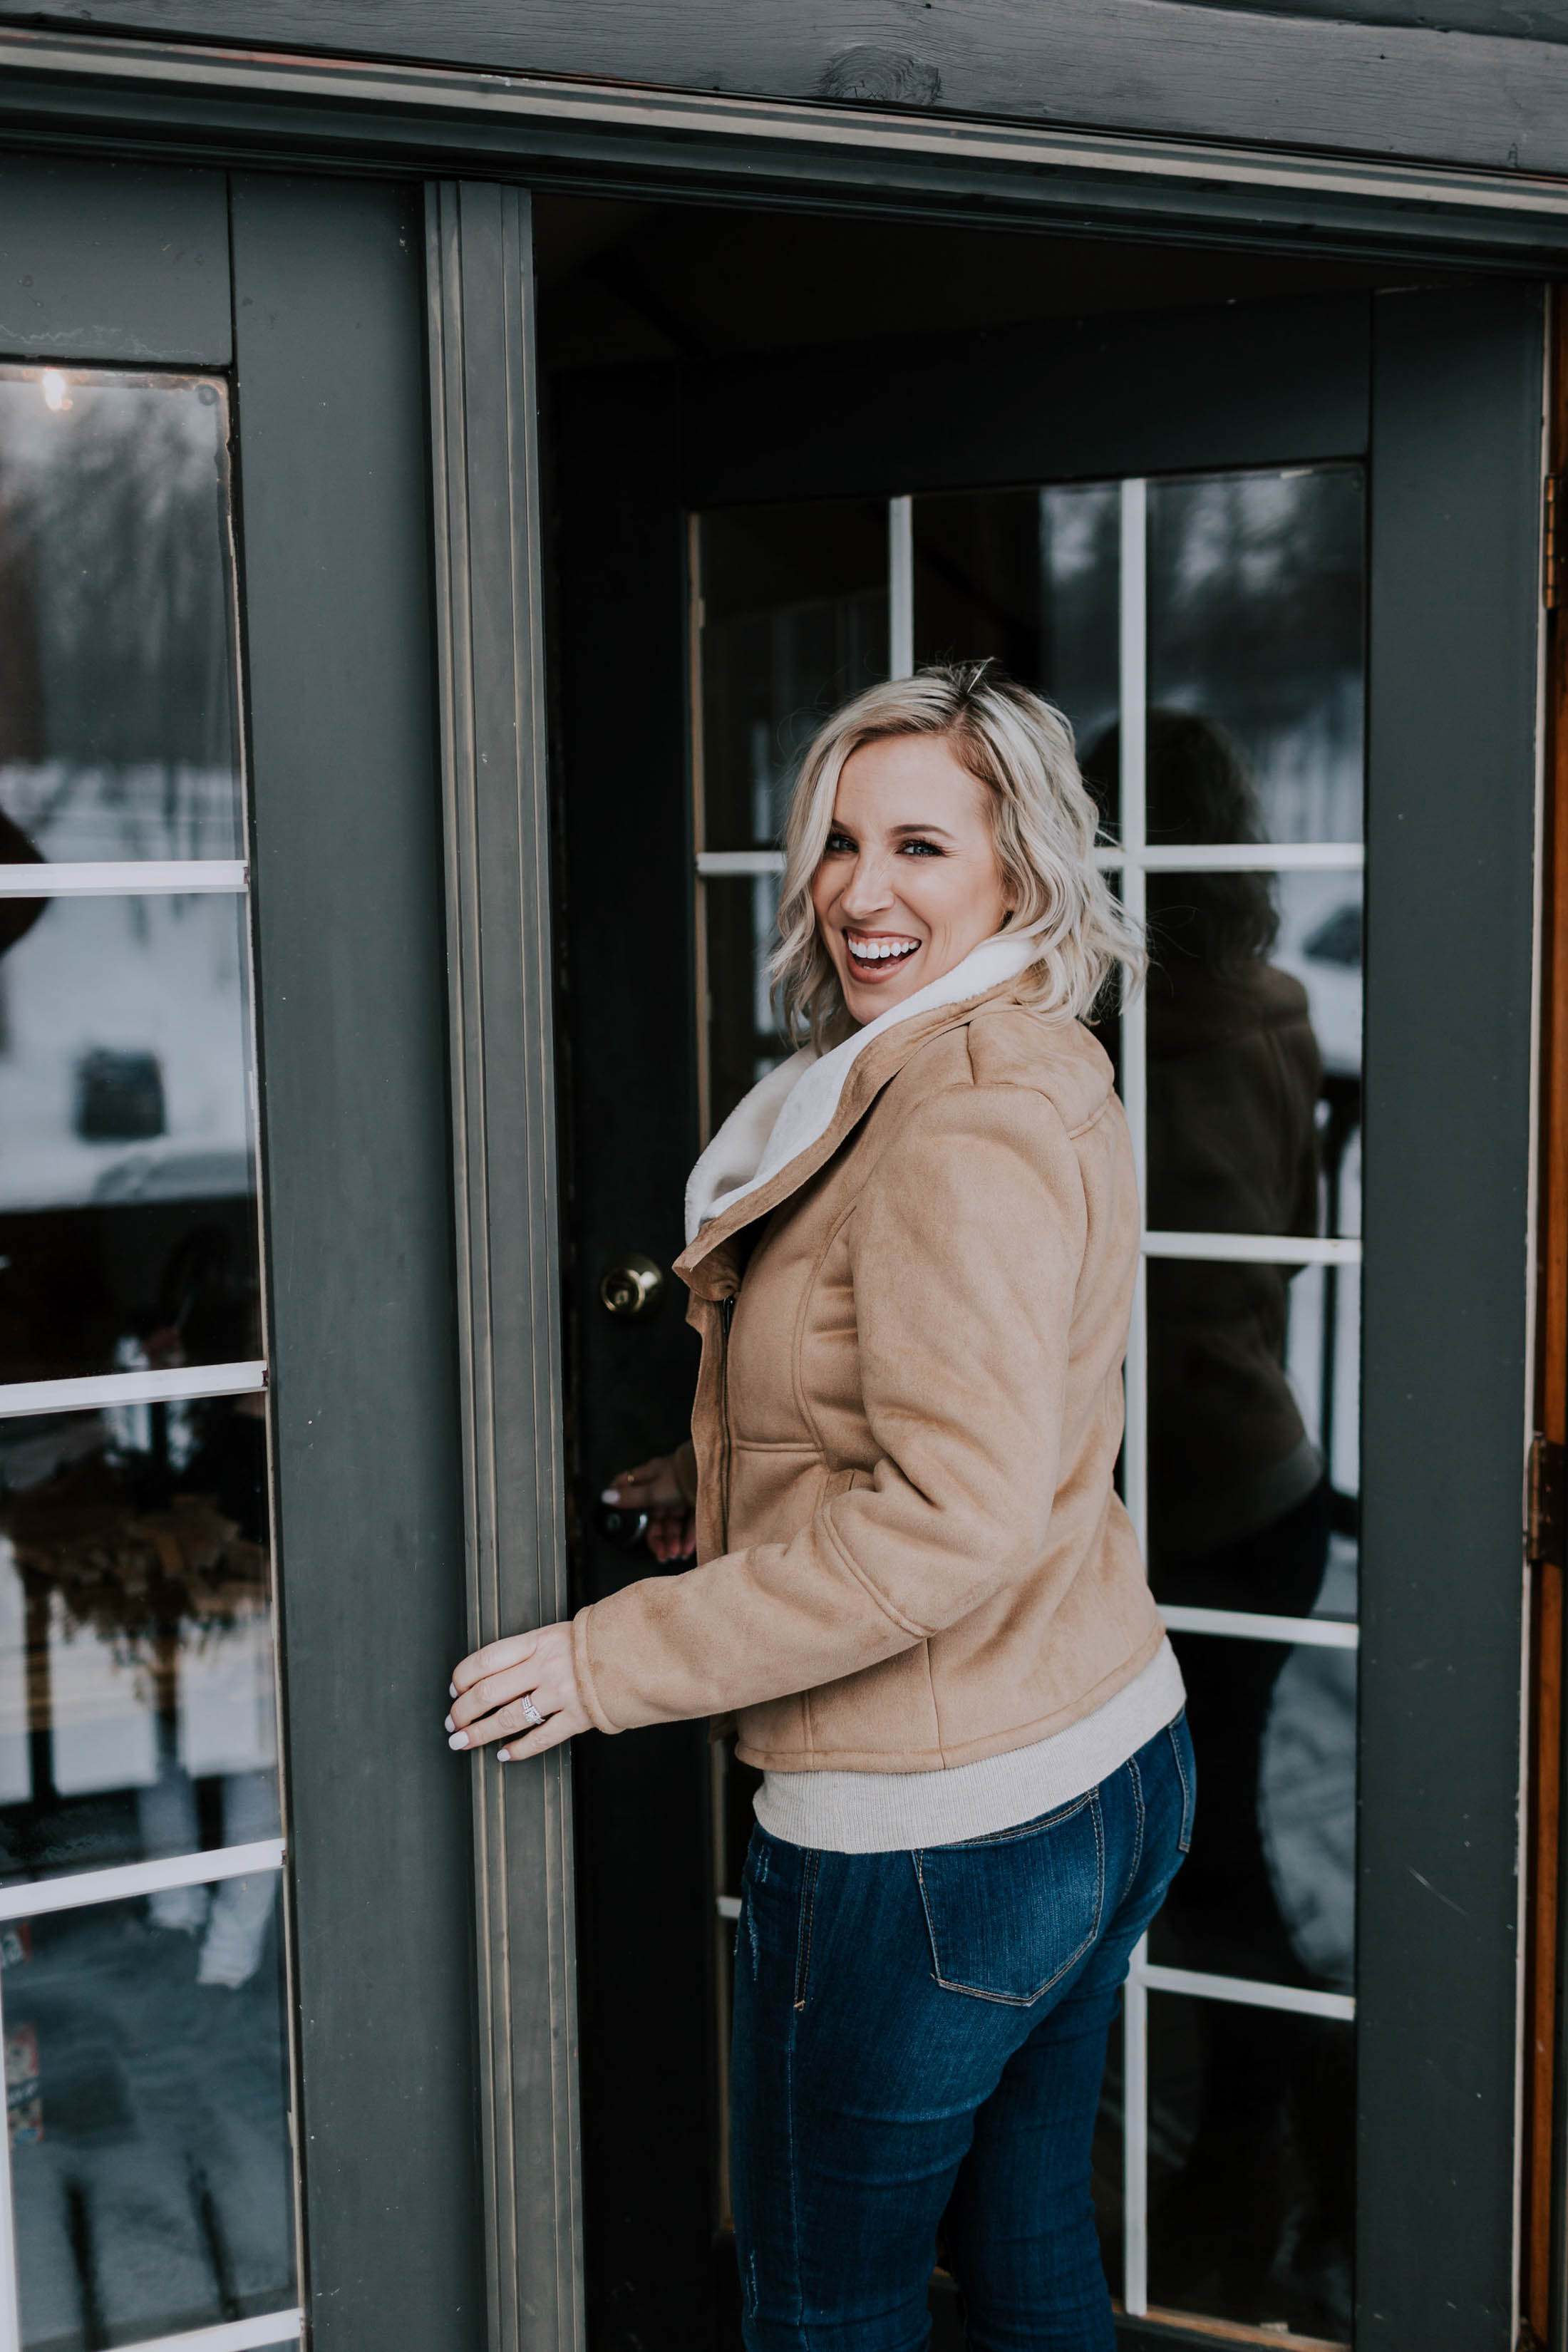 Staying warm & coordinated is a MUST for this fun-loving, midwest-dwelling family of 4. We heart how easy Nordstrom makes finding cool, comfy & cozy coats.